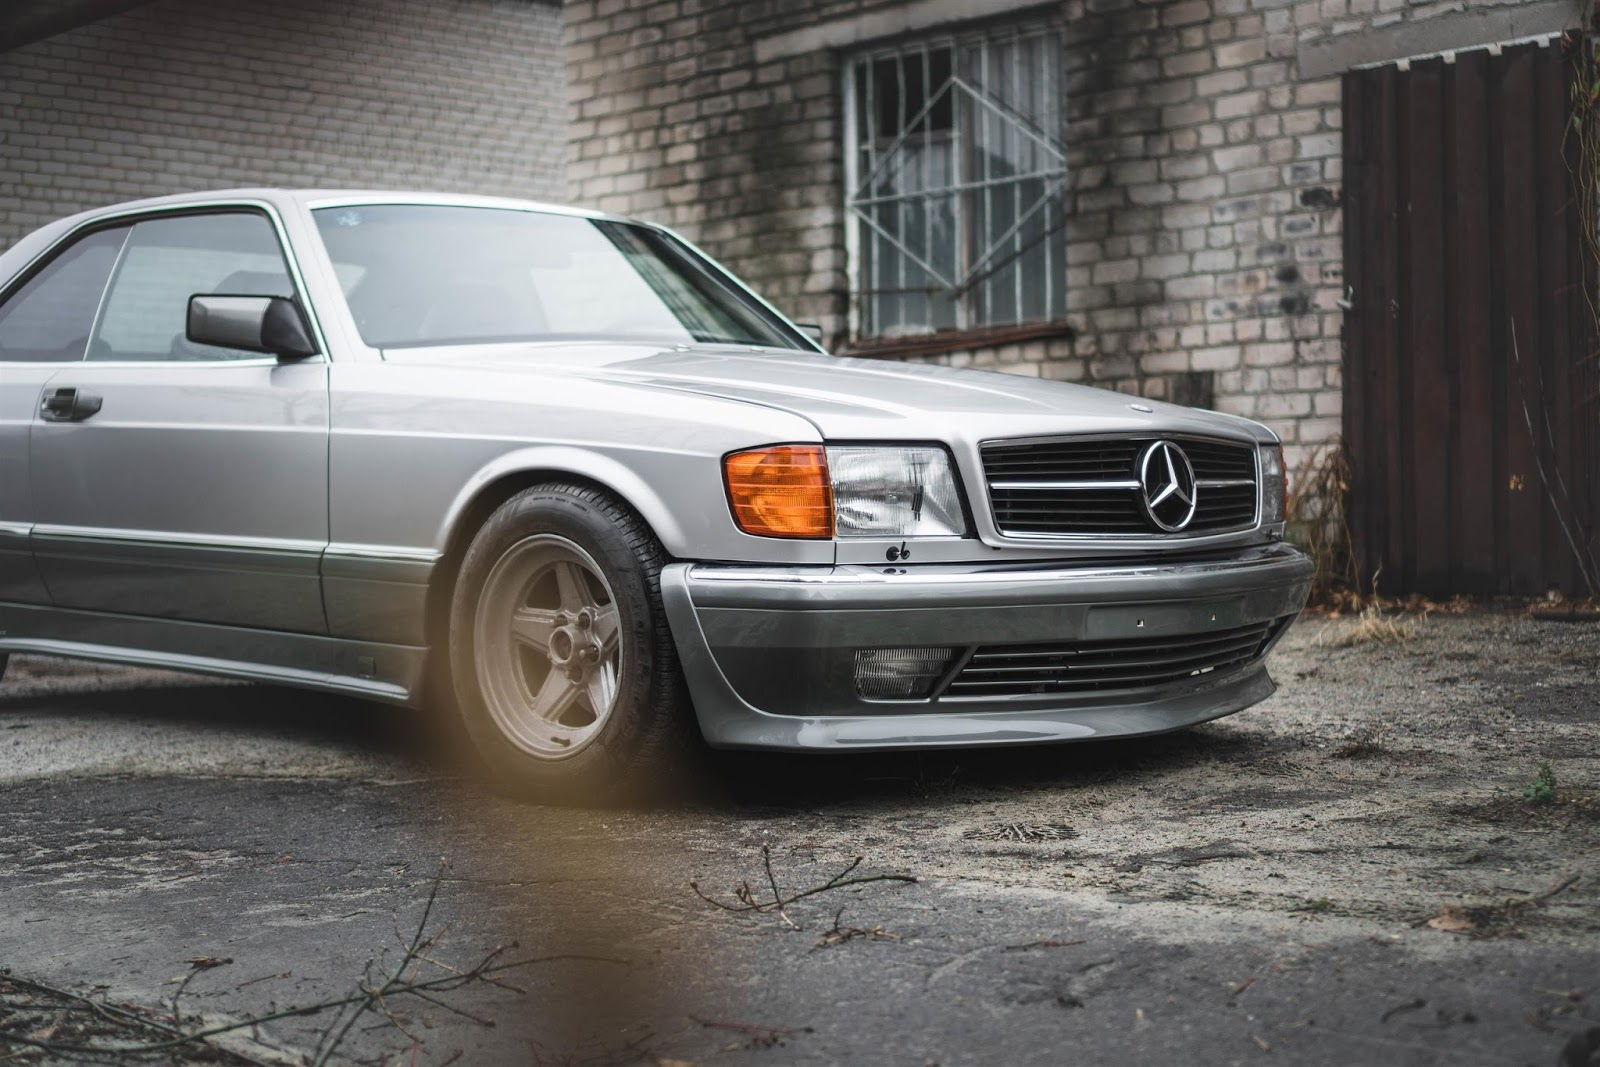 Mercedes benz w126 sec on 16 amg penta wheels benztuning for Mercedes benz wheel